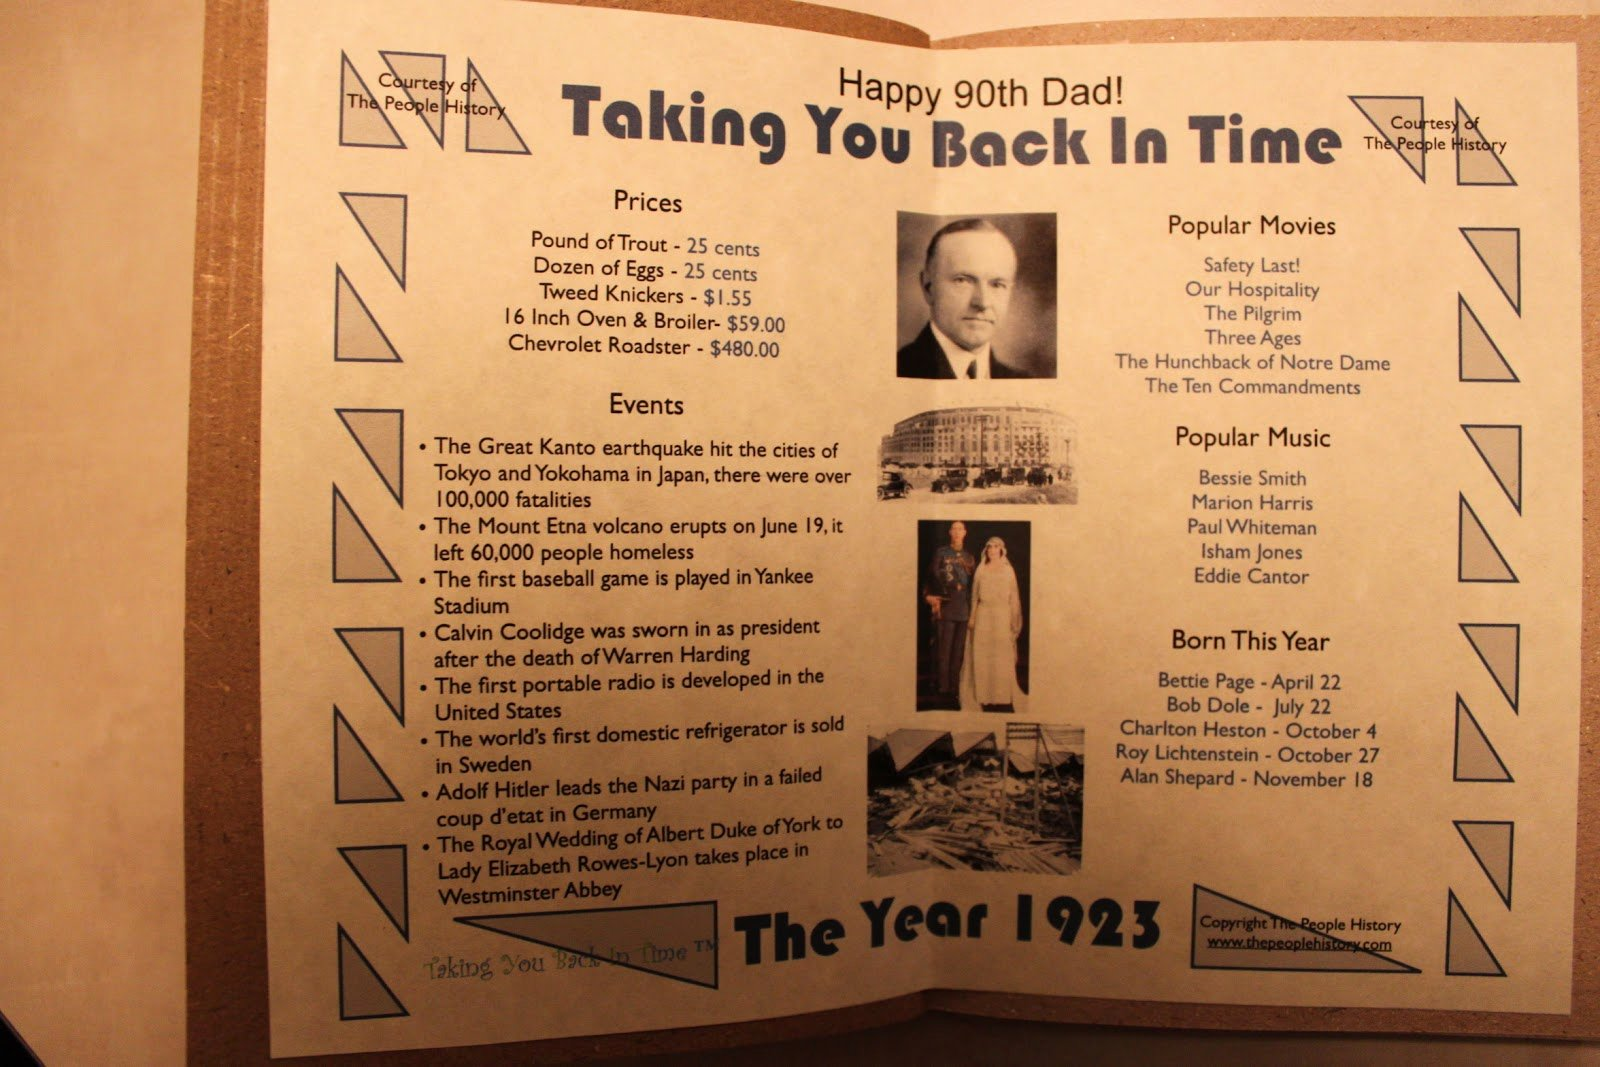 80th Birthday Party Program Elegant Miss Phoebe S Perch the 90th Birthday Party and some